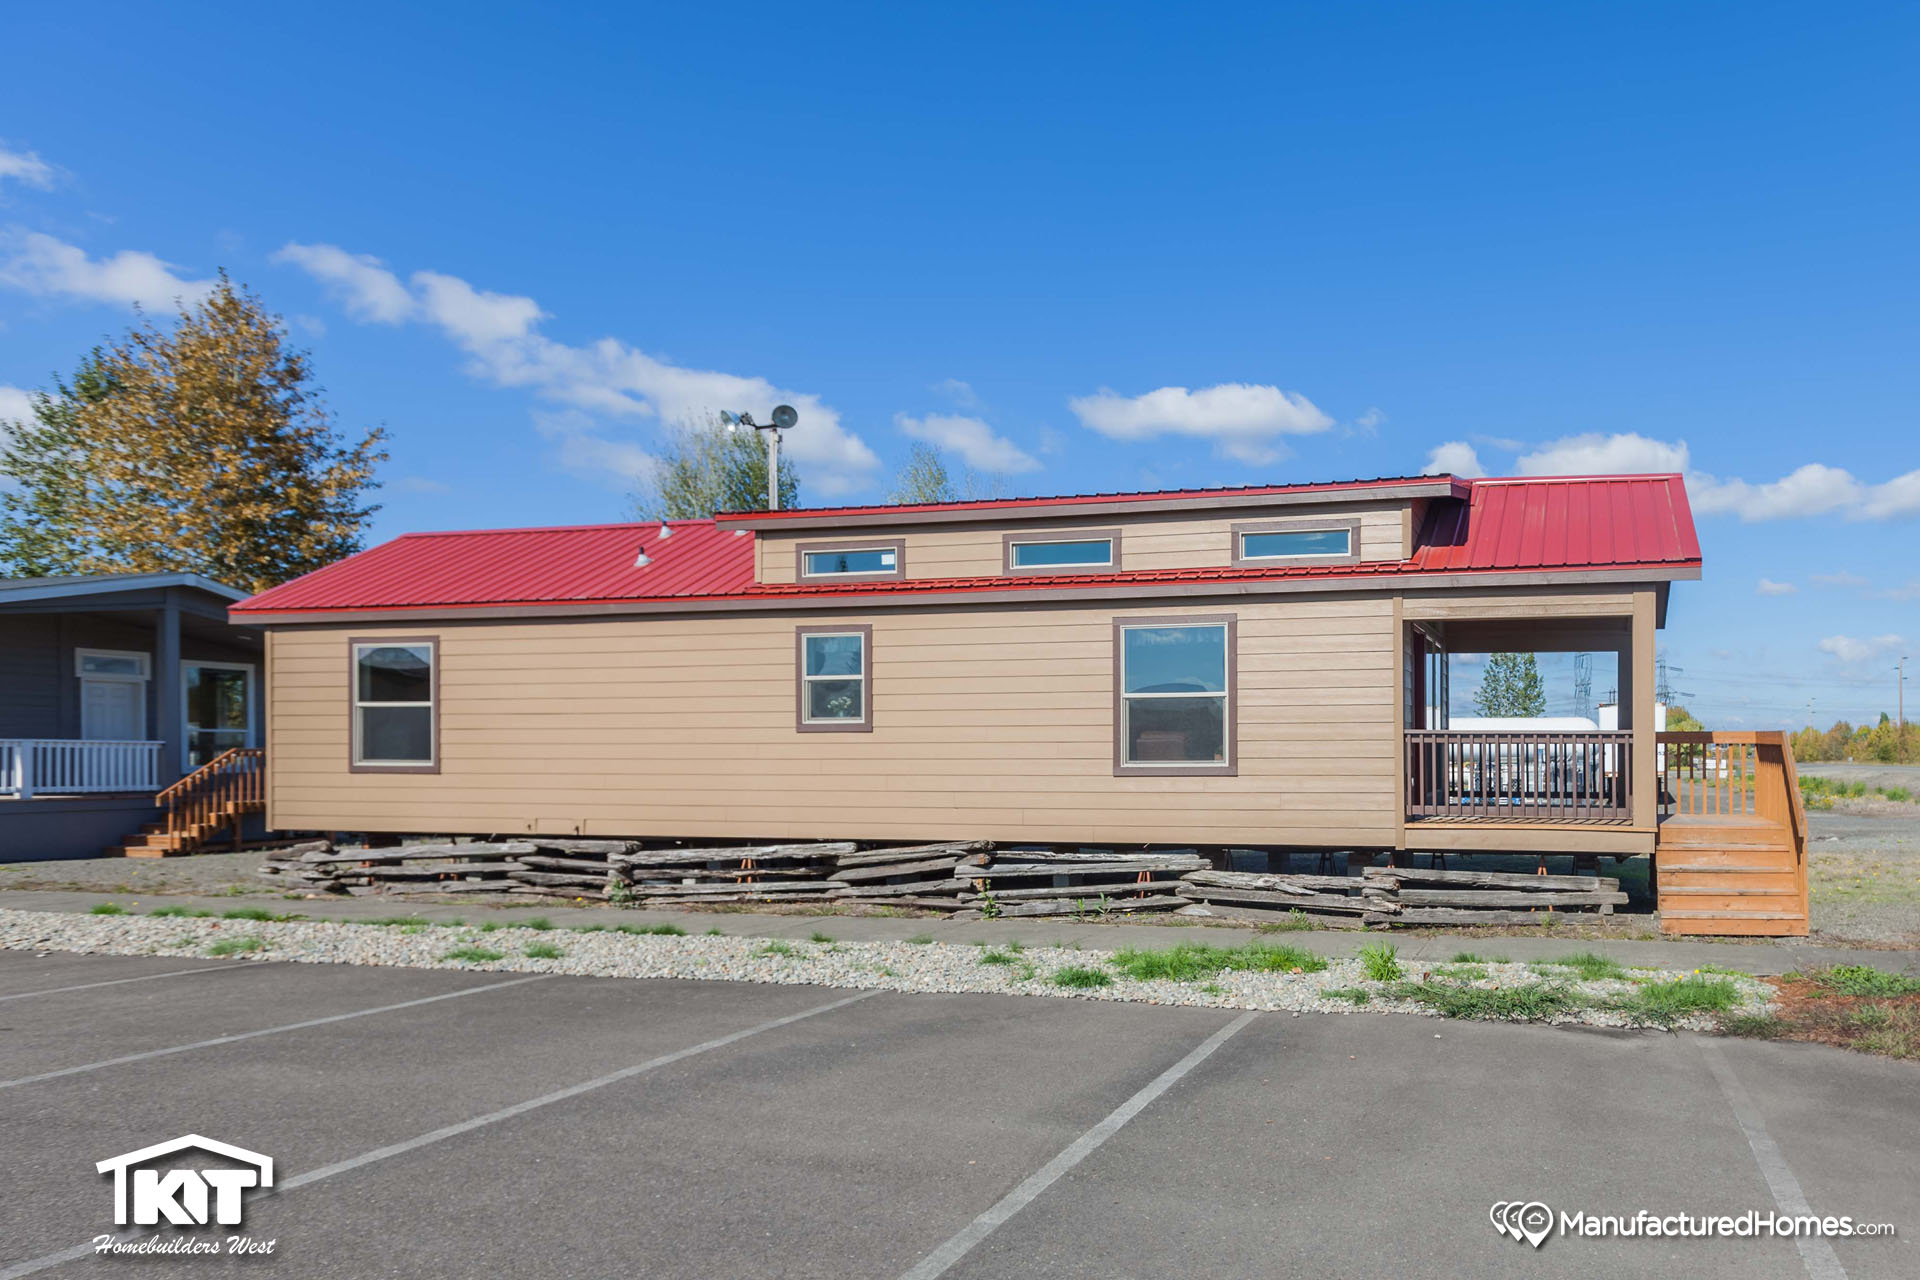 Manufactured Homes And Modular Homes For Sale